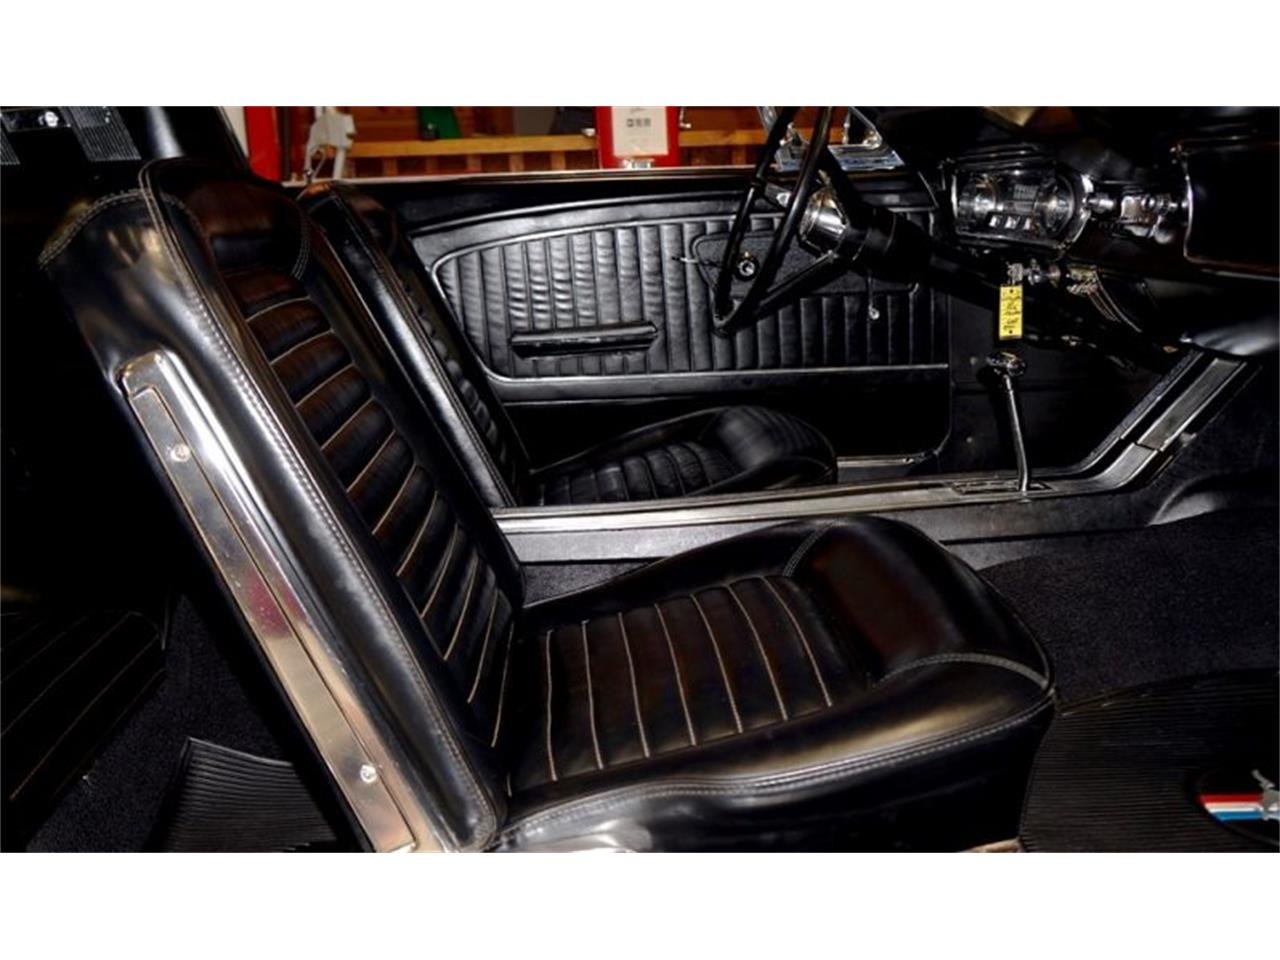 Large Picture of Classic 1965 Ford Mustang located in Indianapolis Indiana Offered by a Private Seller - Q6QR